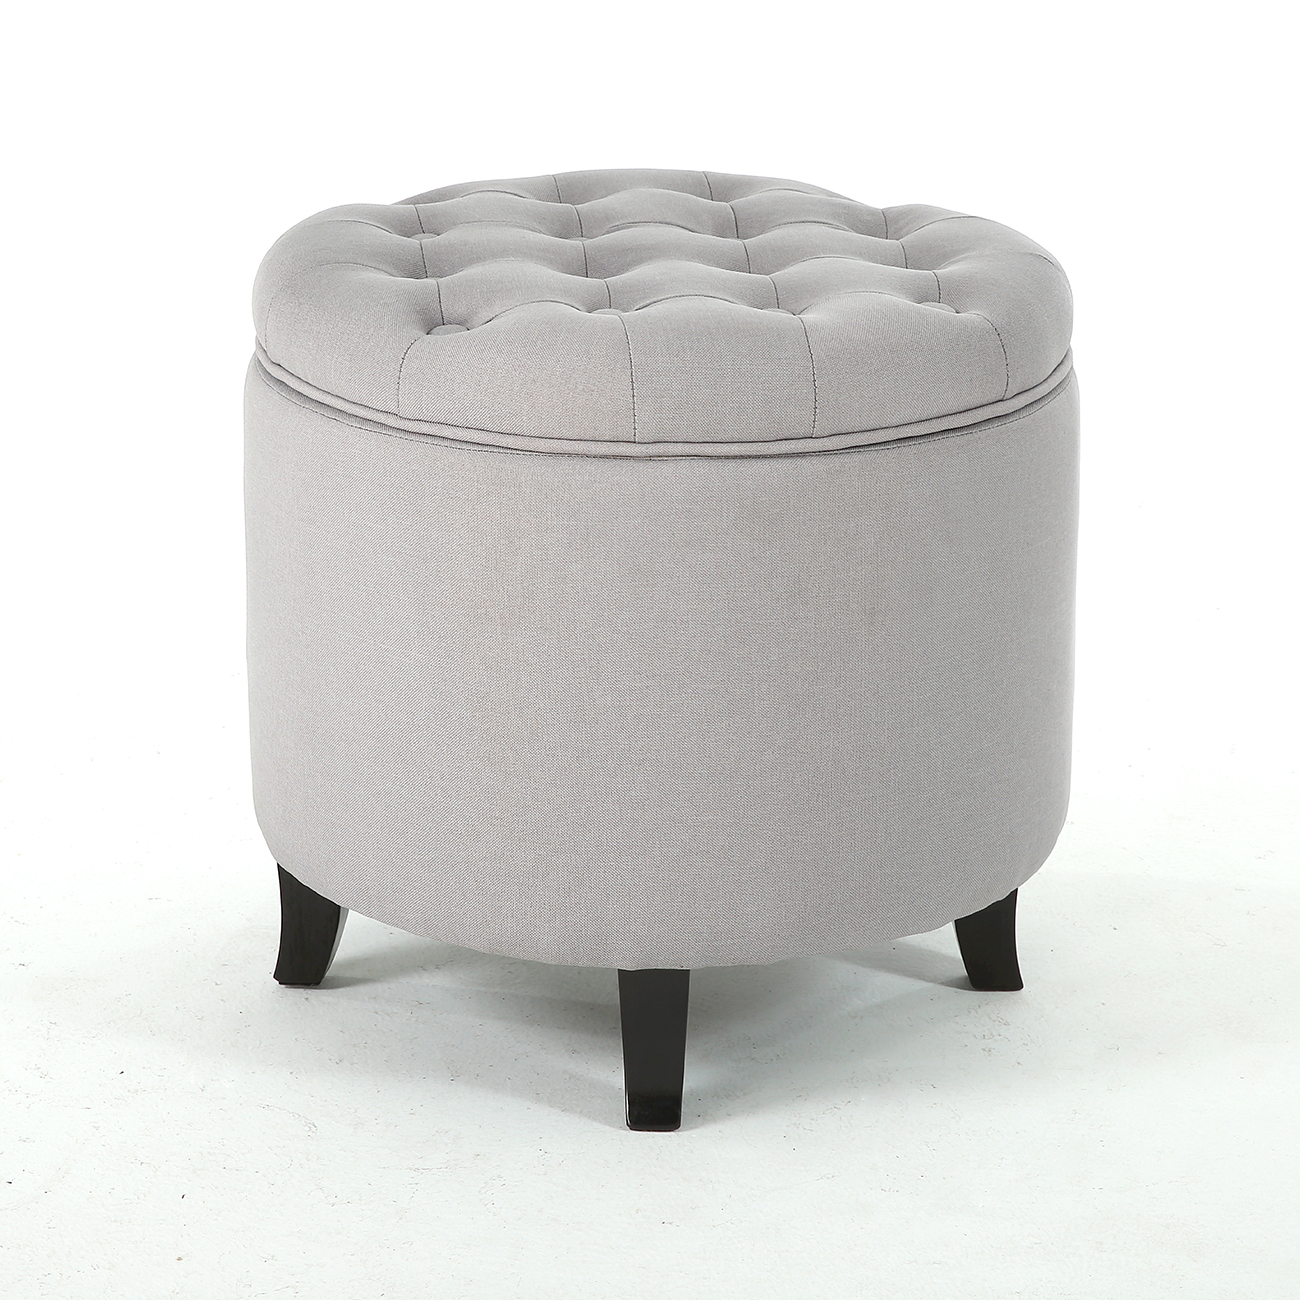 classic storage ottoman seat nailhead trim large round tufted table tray gray 846183165095 ebay. Black Bedroom Furniture Sets. Home Design Ideas